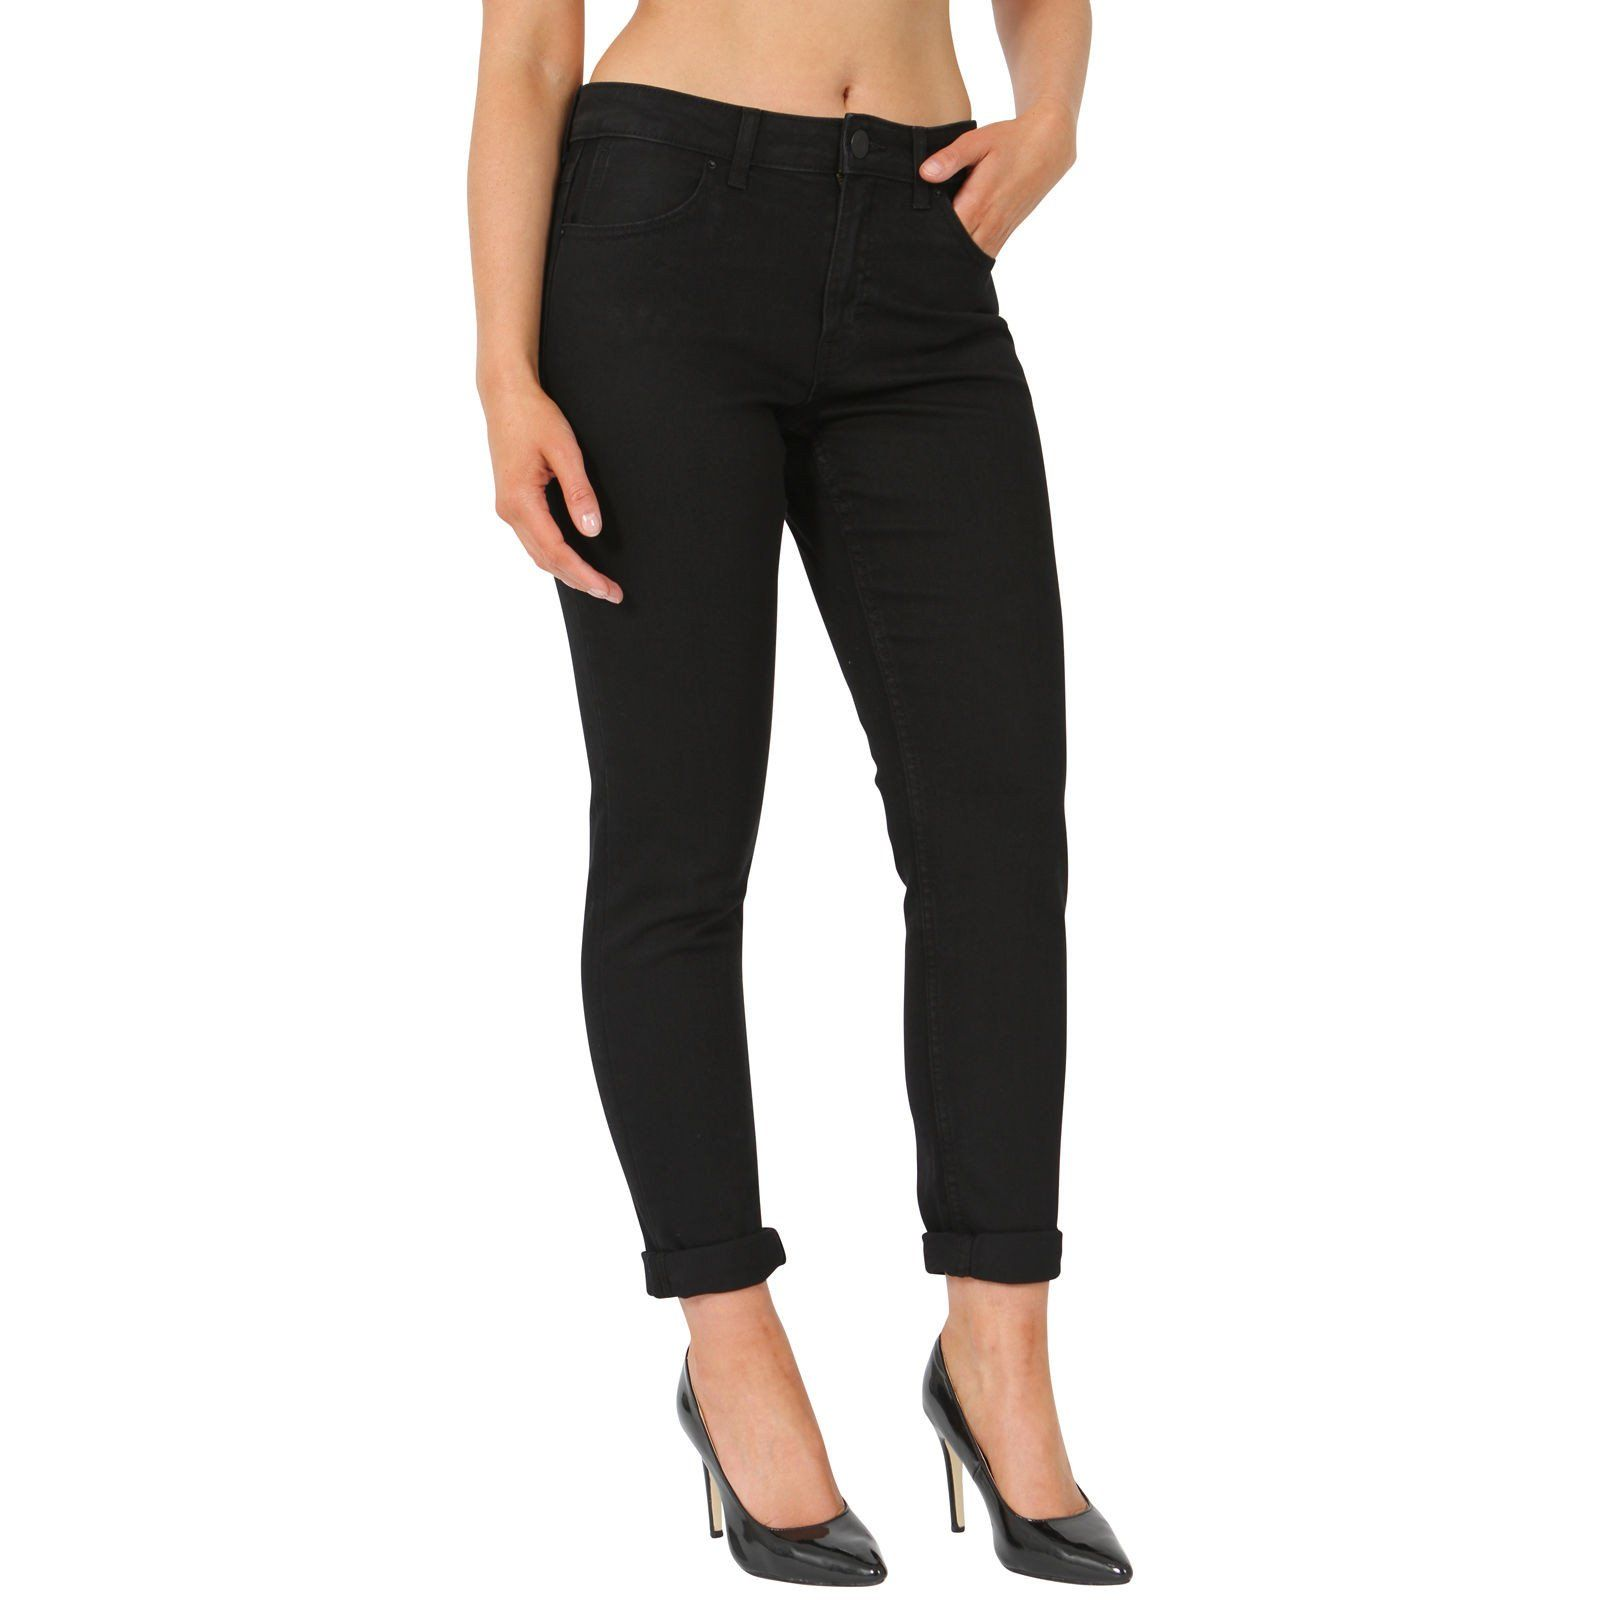 Marks spencer ms black grey or khaki relaxed skinny fit